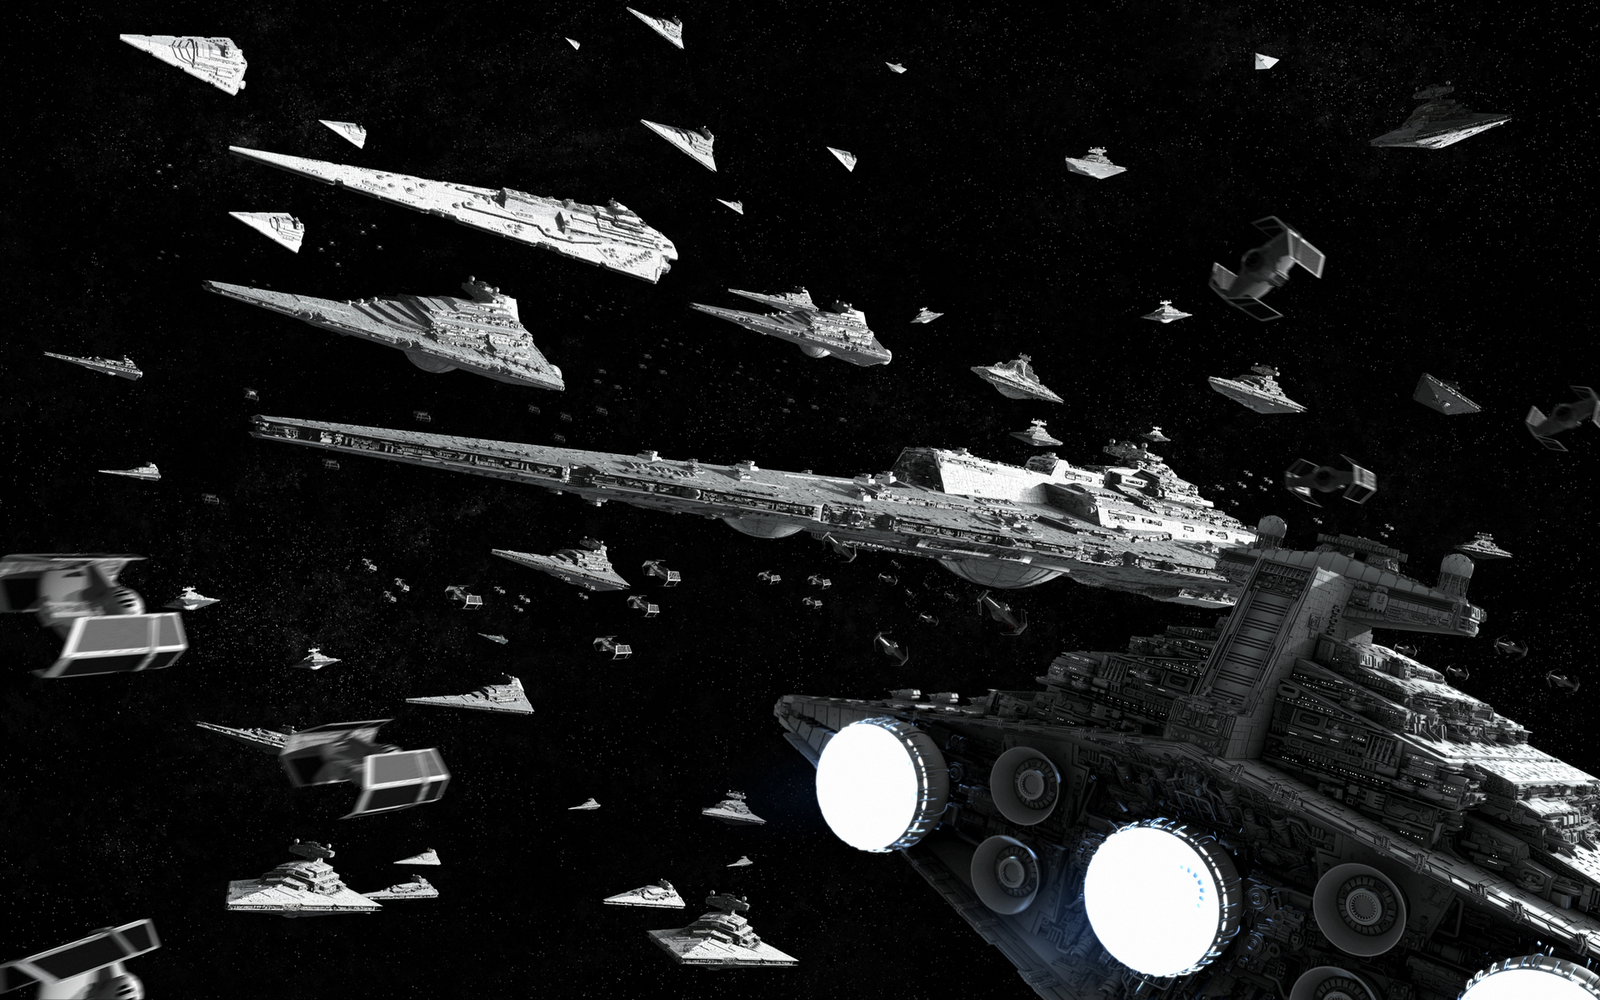 s star wars starship wallpapers - photo #7